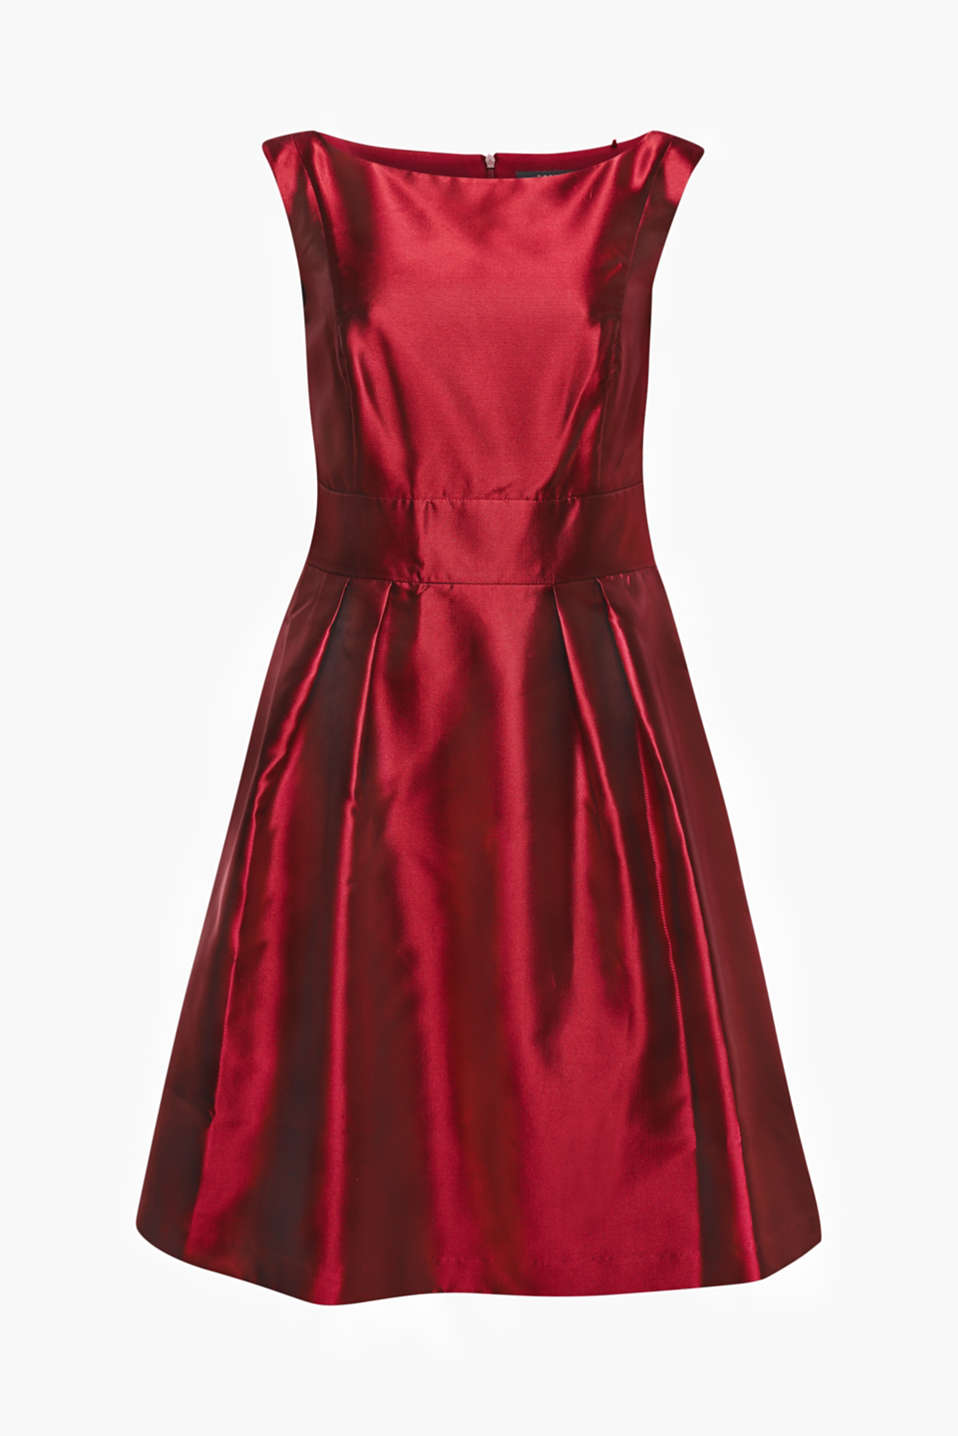 Stunning! We cannot describe this party dress with a swinging skirt and a distinctive red in any other way.